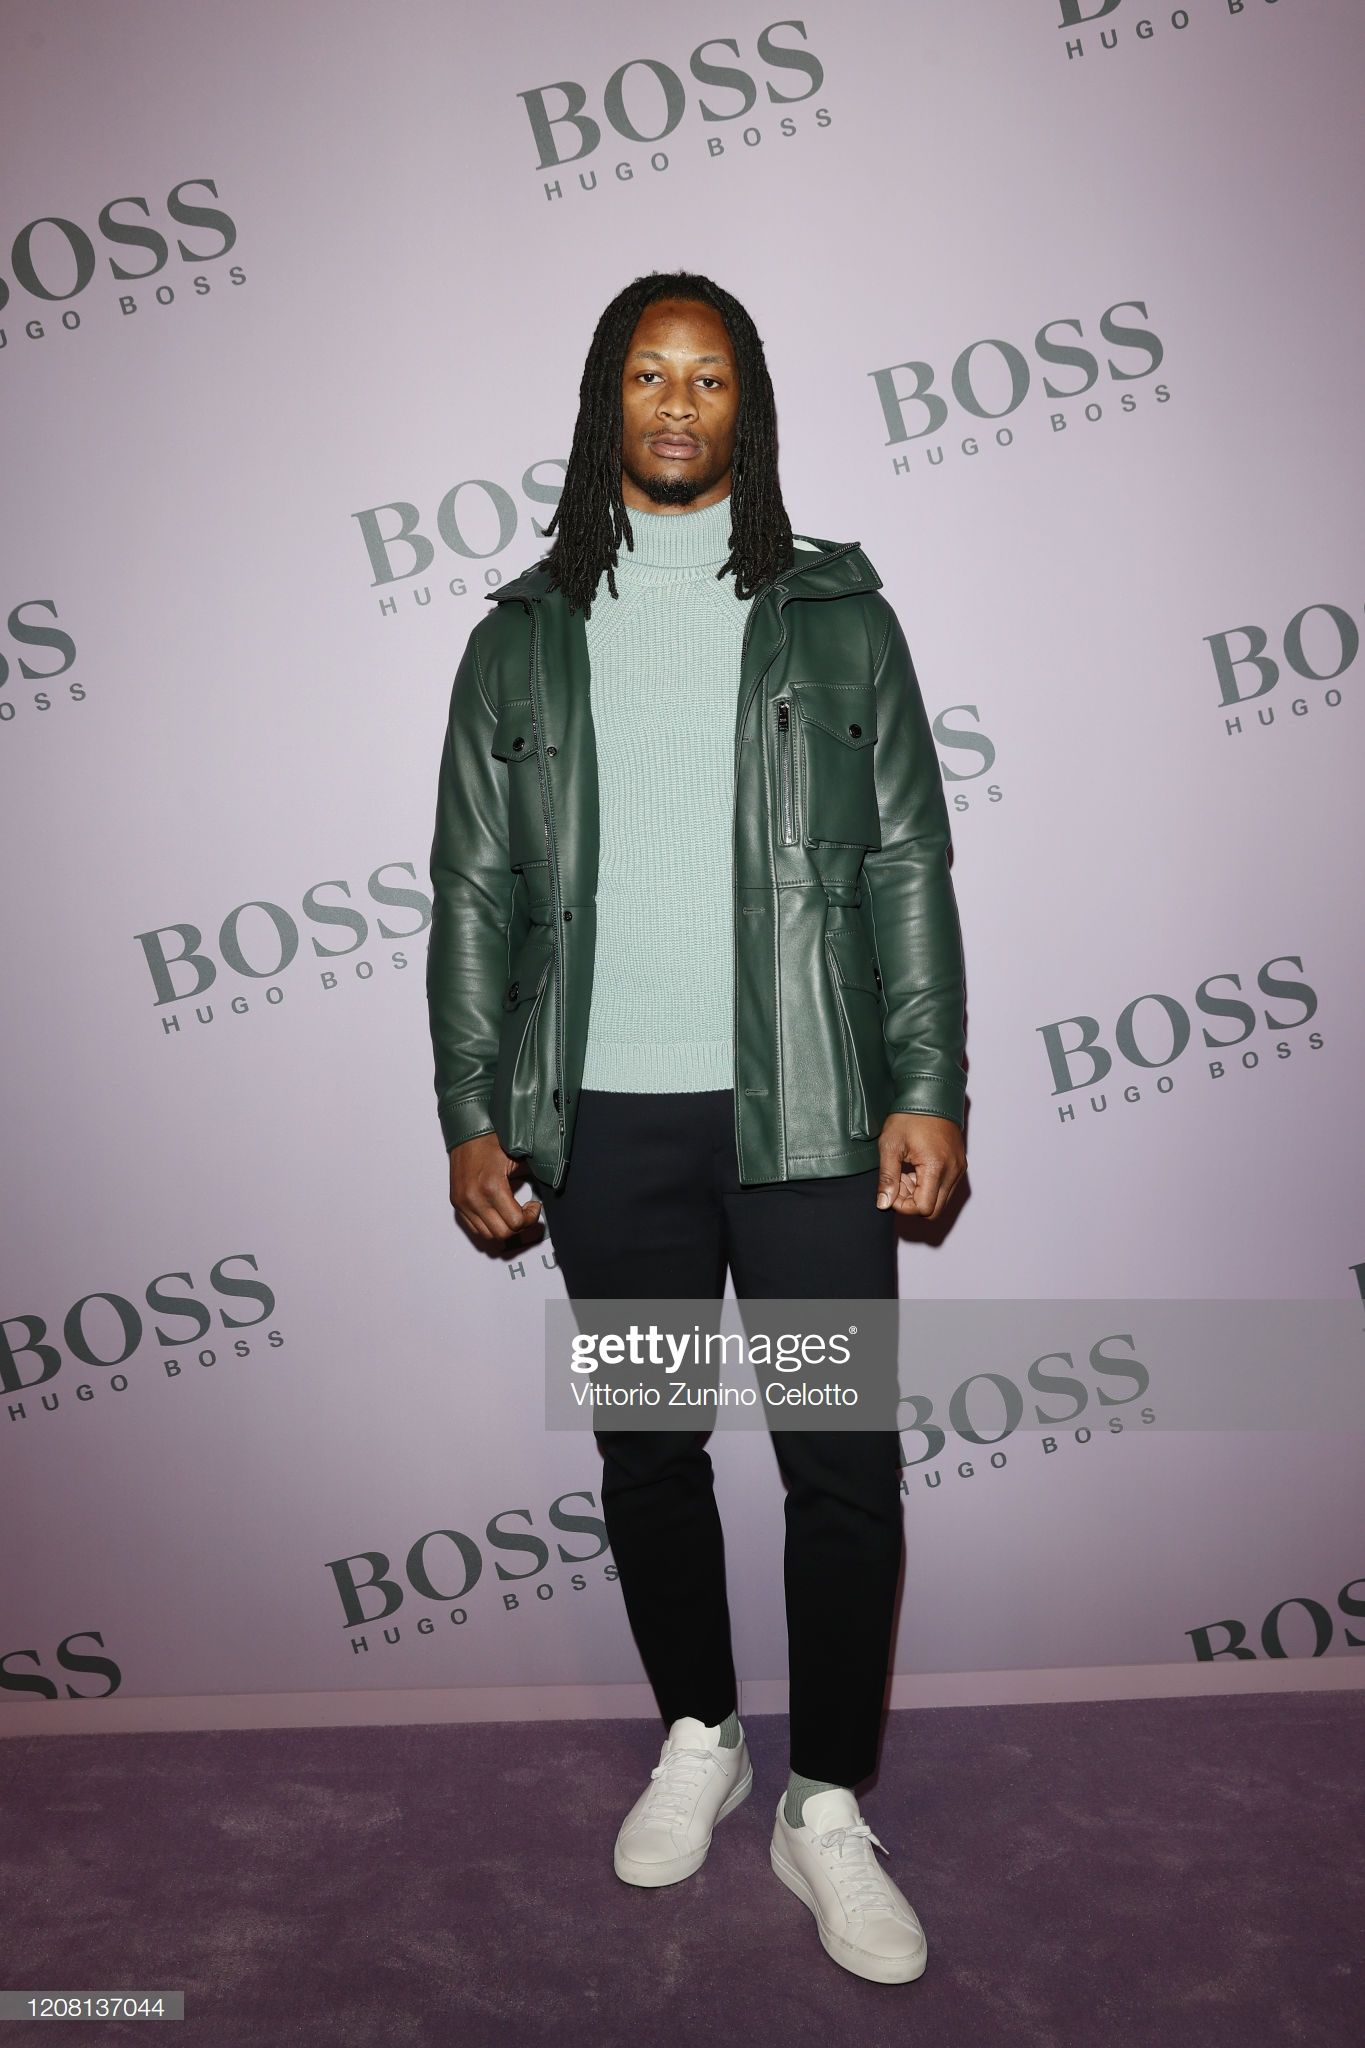 Todd Gurley Attends The Boss Fashion Show During The Milan Fashion In 2020 Fashion Todd Gurley Fashion Show